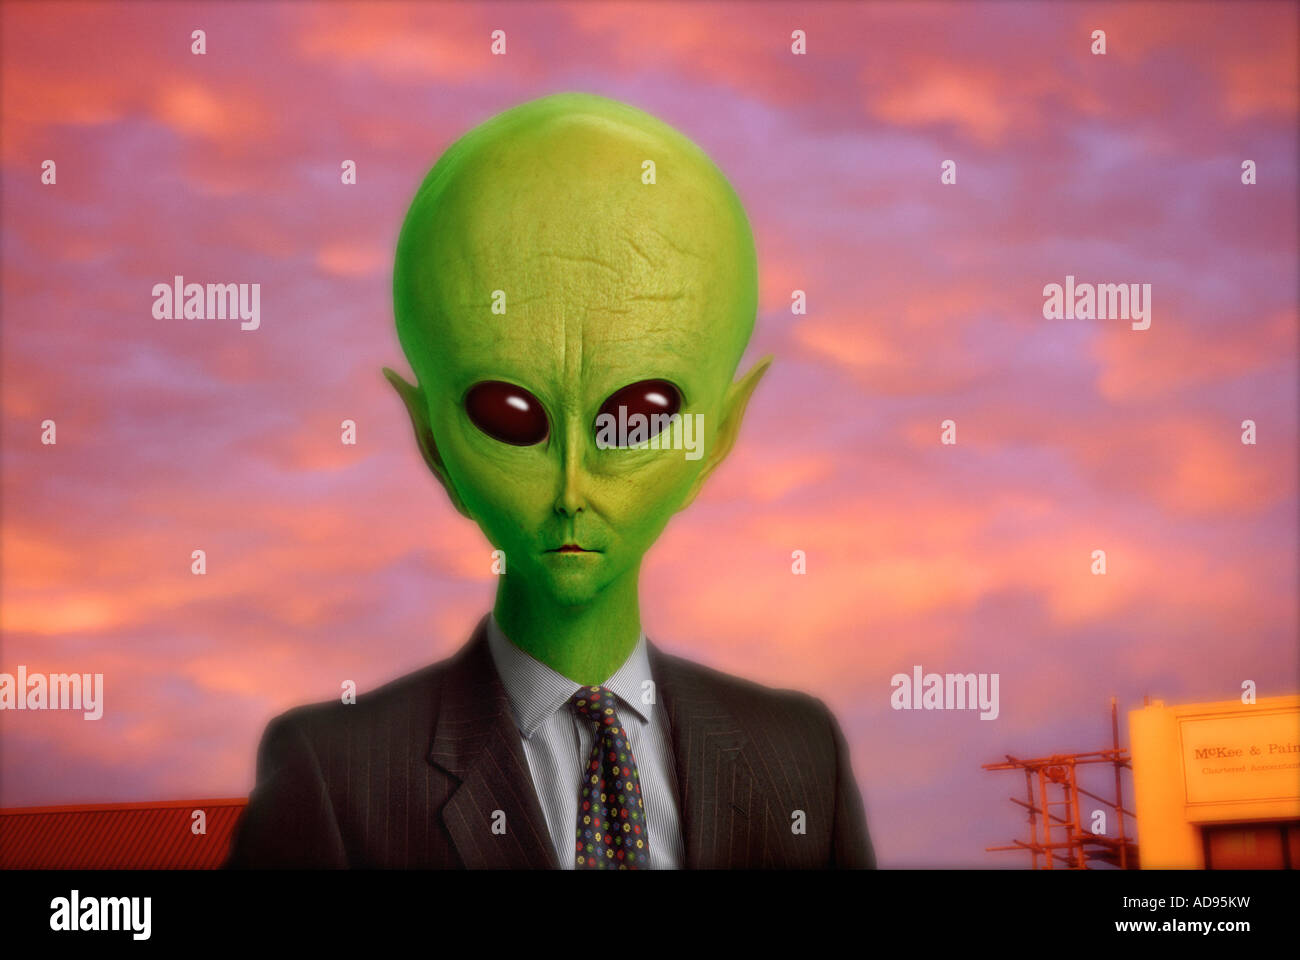 Photo illustration of alien dressed as businessman - Stock Image